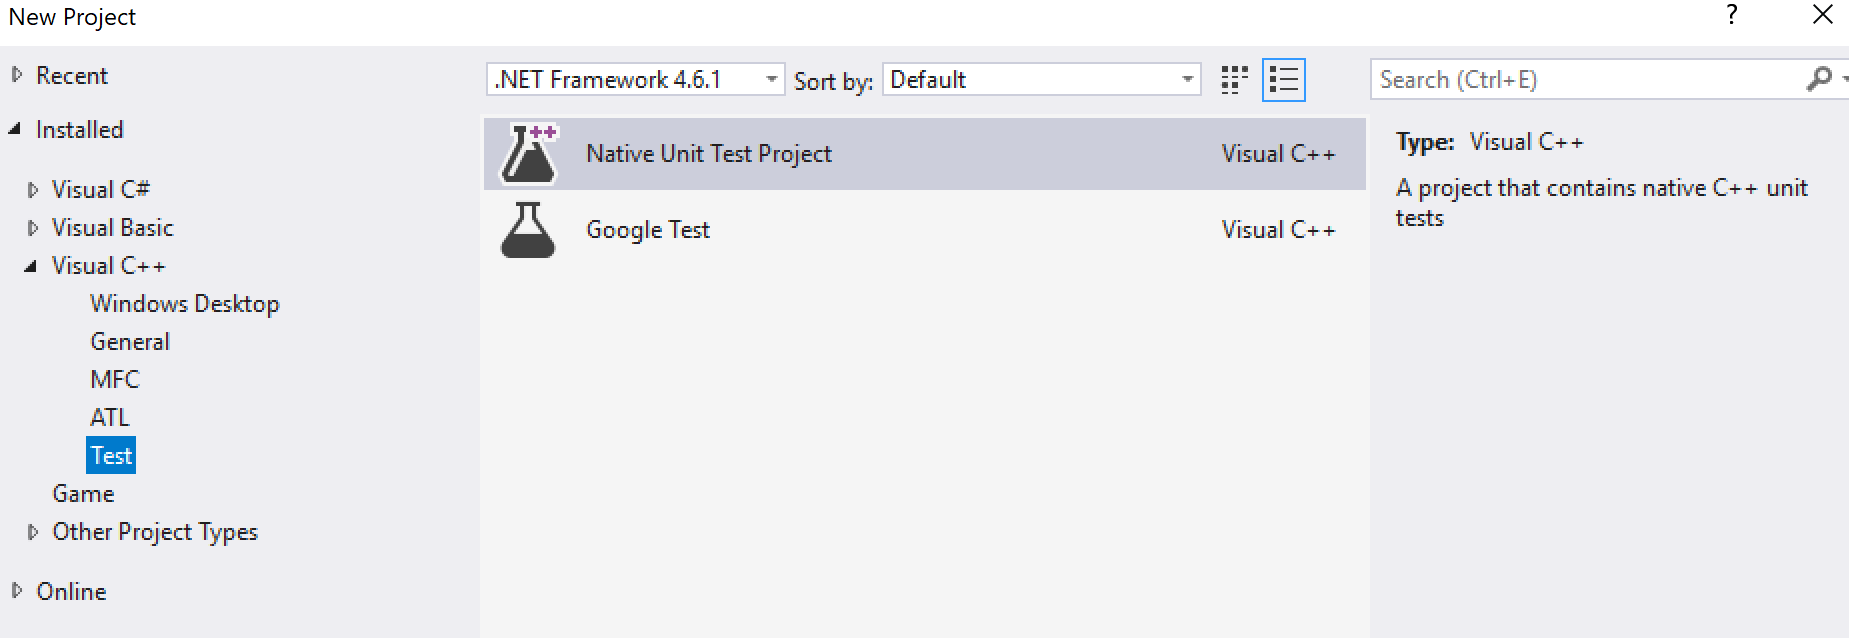 Microsoft Native Test or Google Test project template in the New Project Wizard